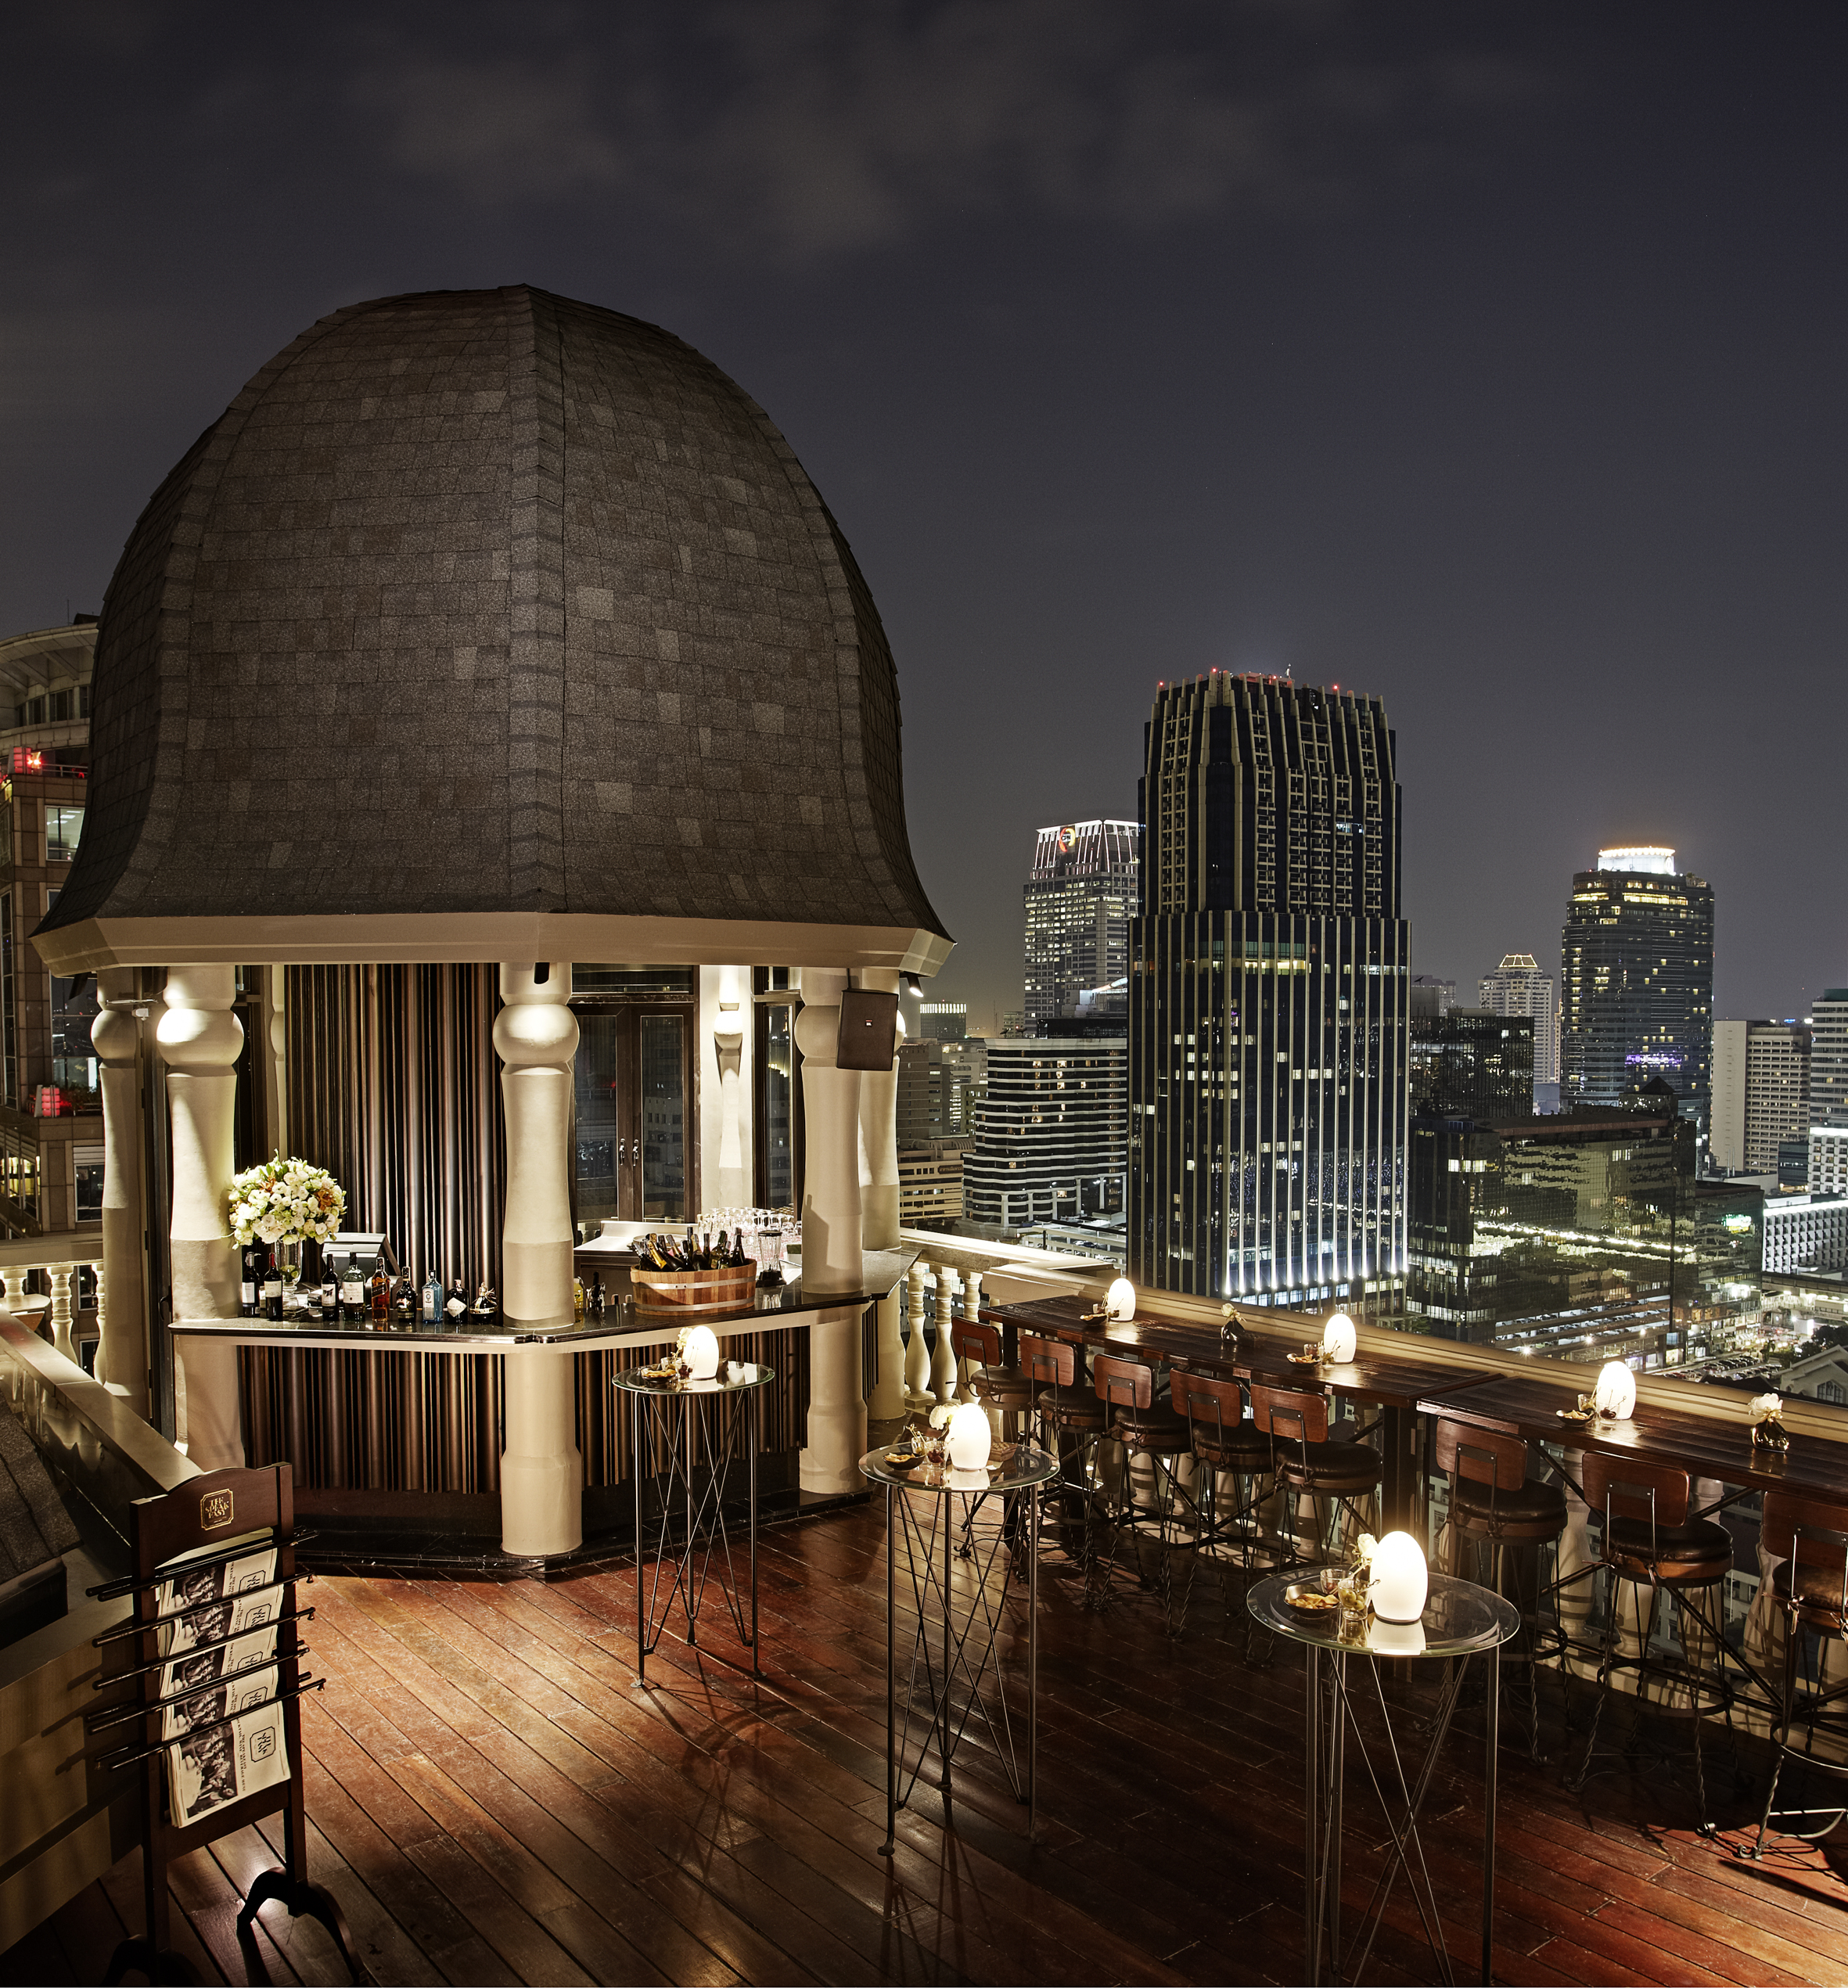 The Speakeasy Rooftop Bar